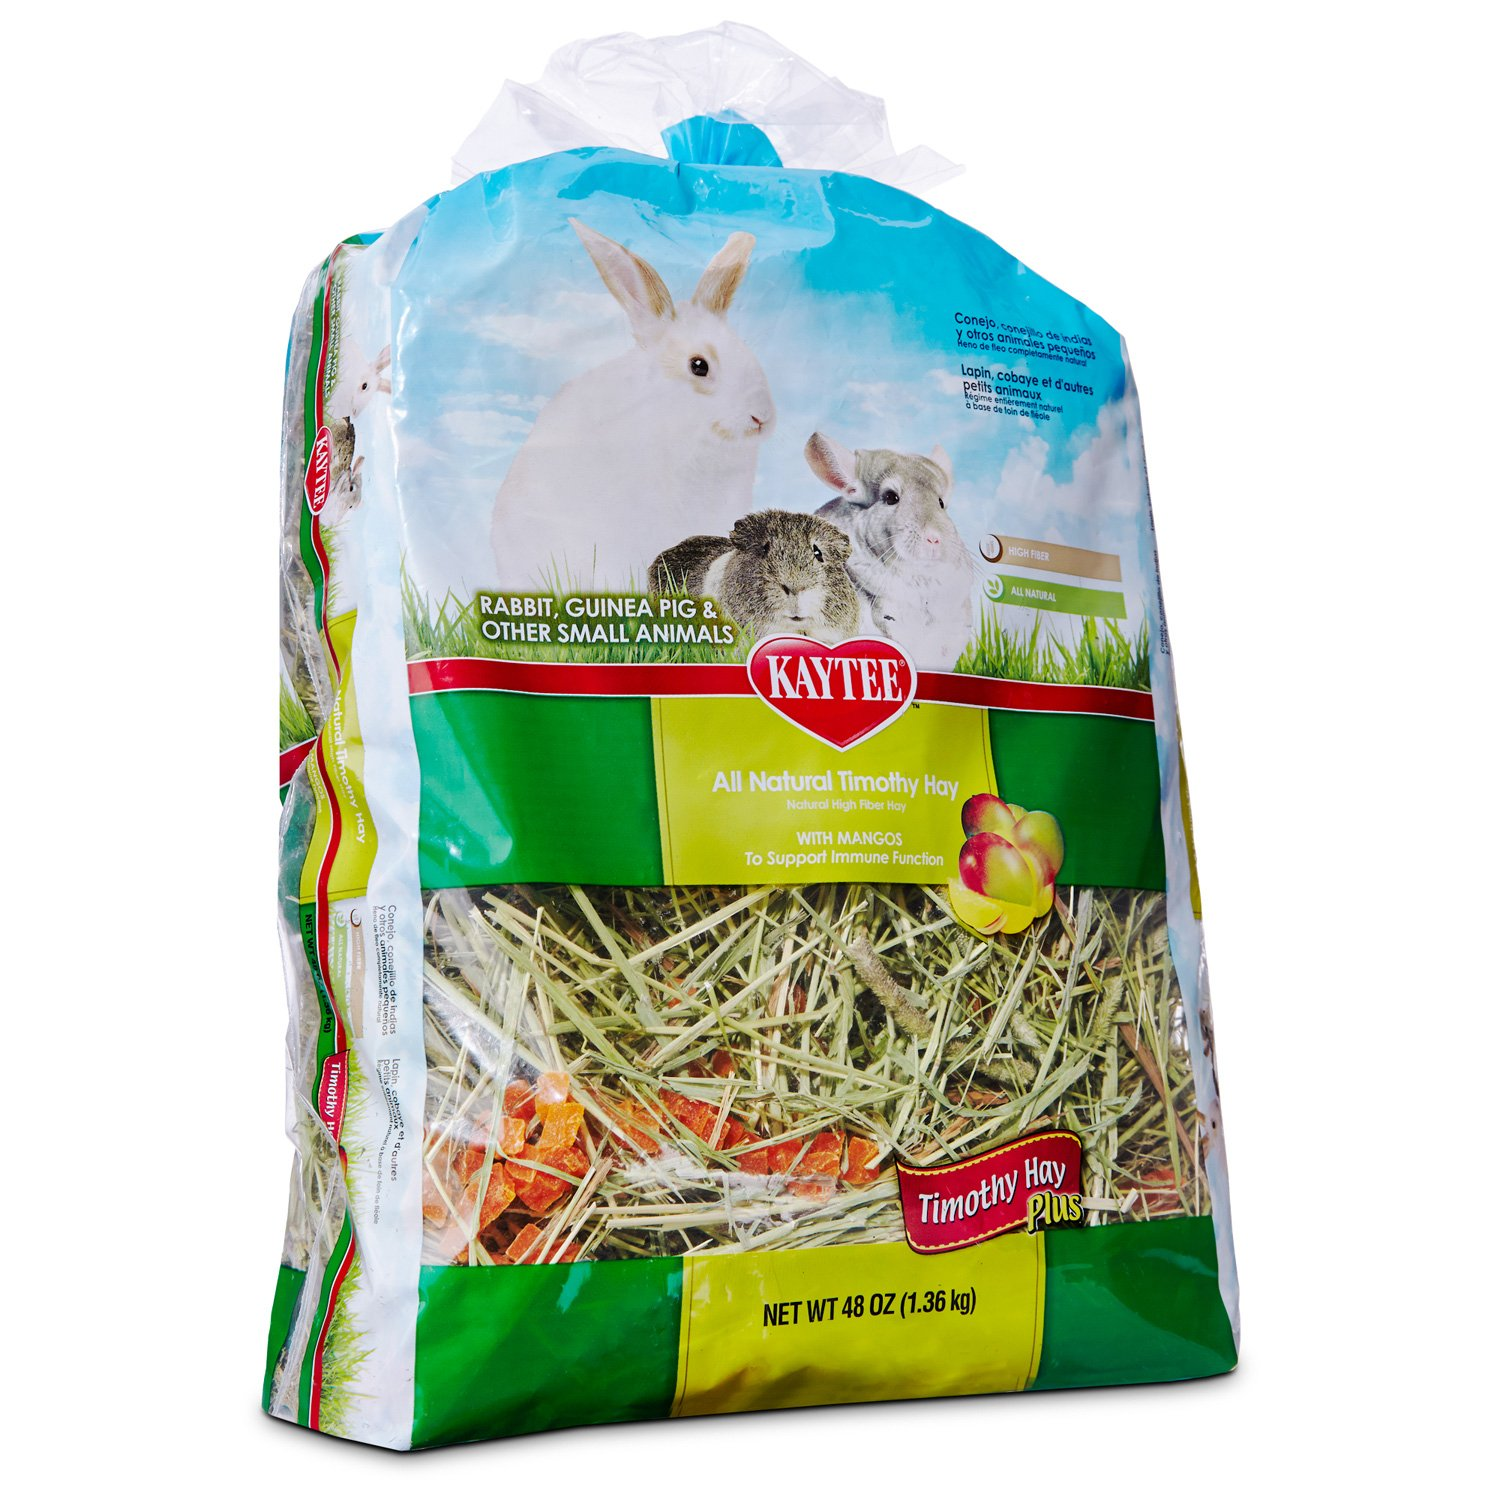 Kaytee All Natural Timothy Hay with Mango for Rabbits & Small Animals